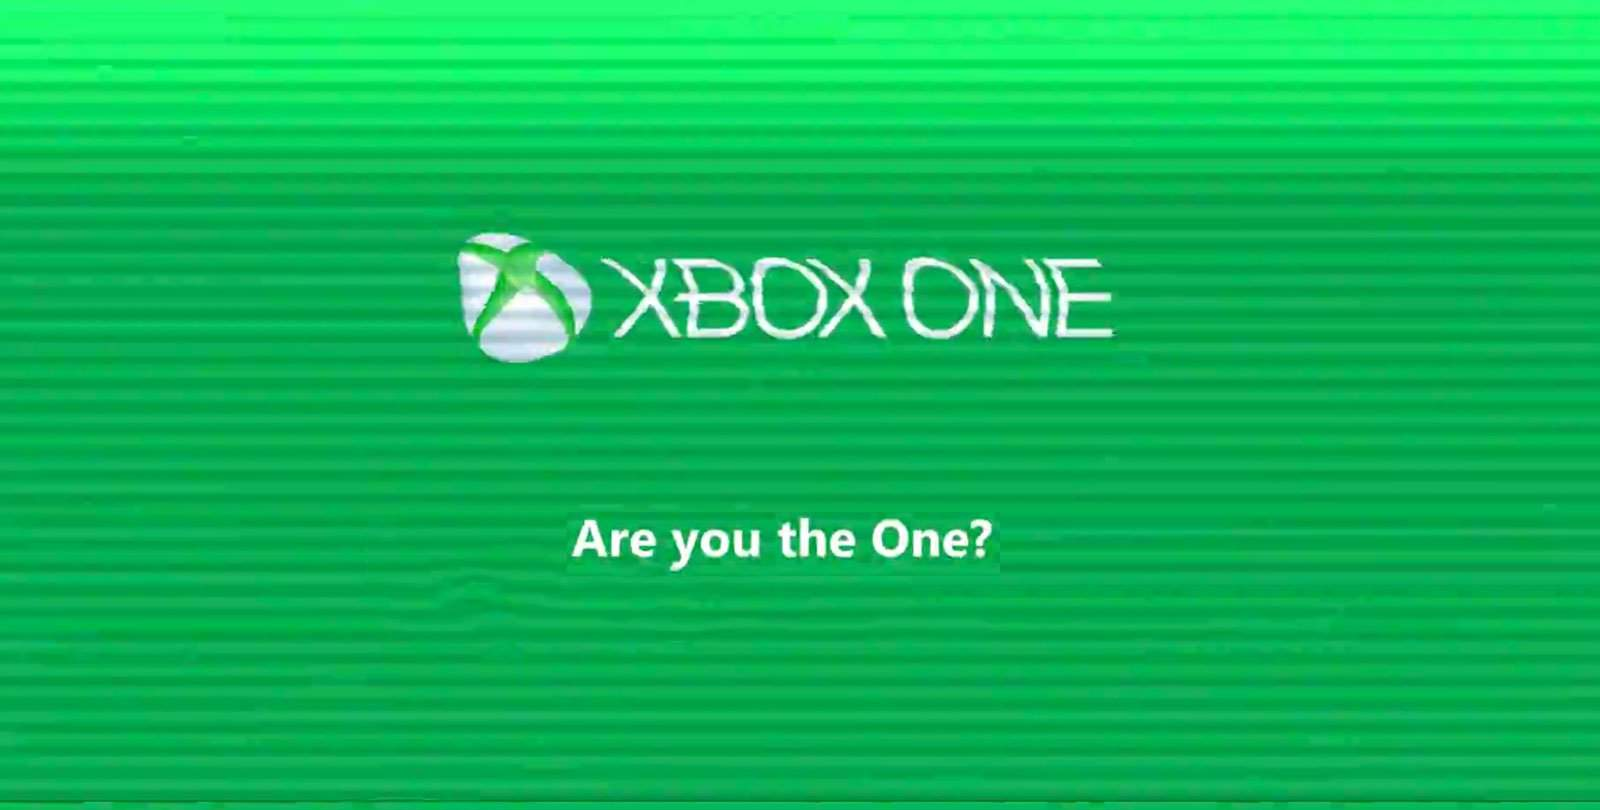 Are you the ONE? Find out in Microsoft's Cryptic Xbox One Campaign